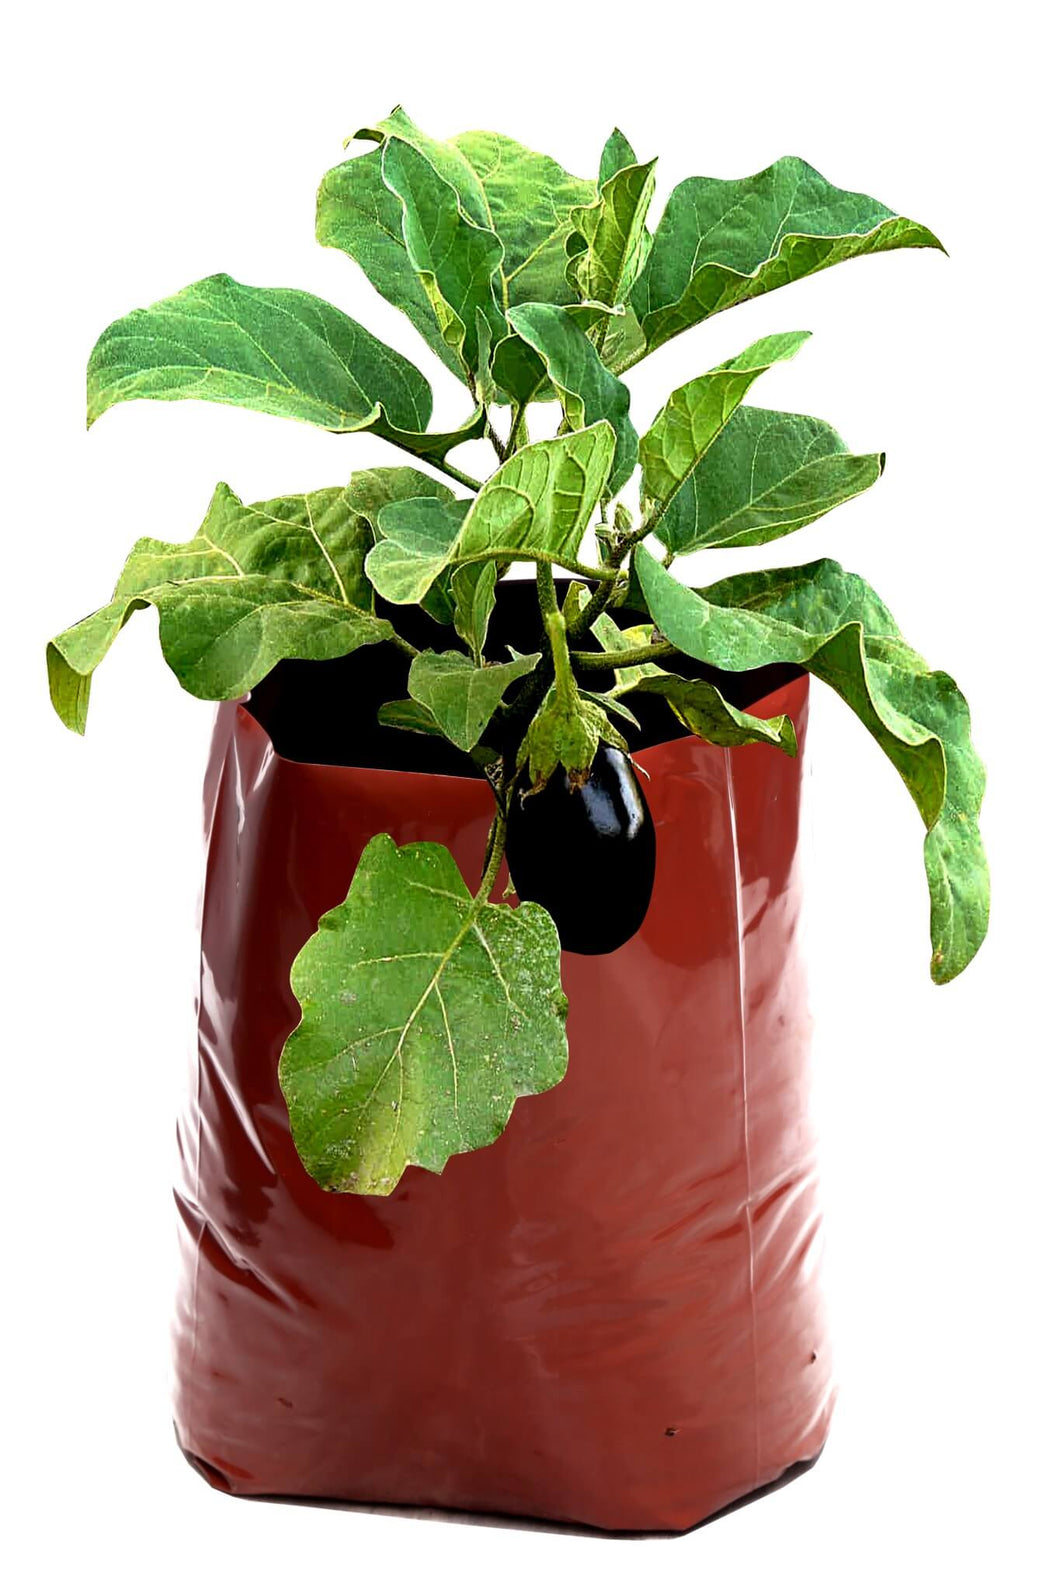 Rochfern Grow Bag (Pack of 6) Super Large for Vegetable Plants and Flowering Plants Size-60cms x 36cms X 24cms-Terracotta